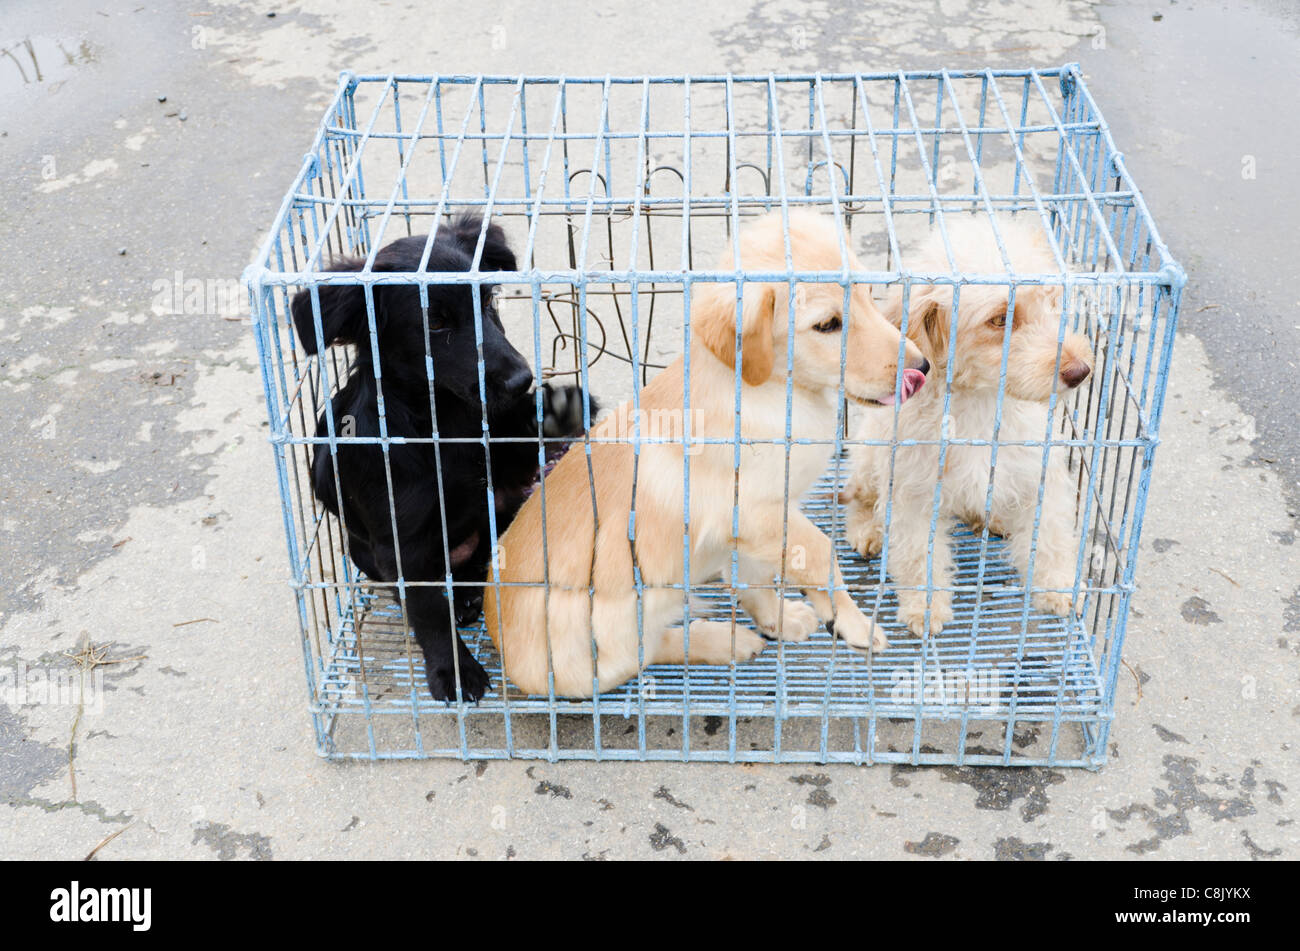 Caged Dogs Stock Photos & Caged Dogs Stock Images - Alamy